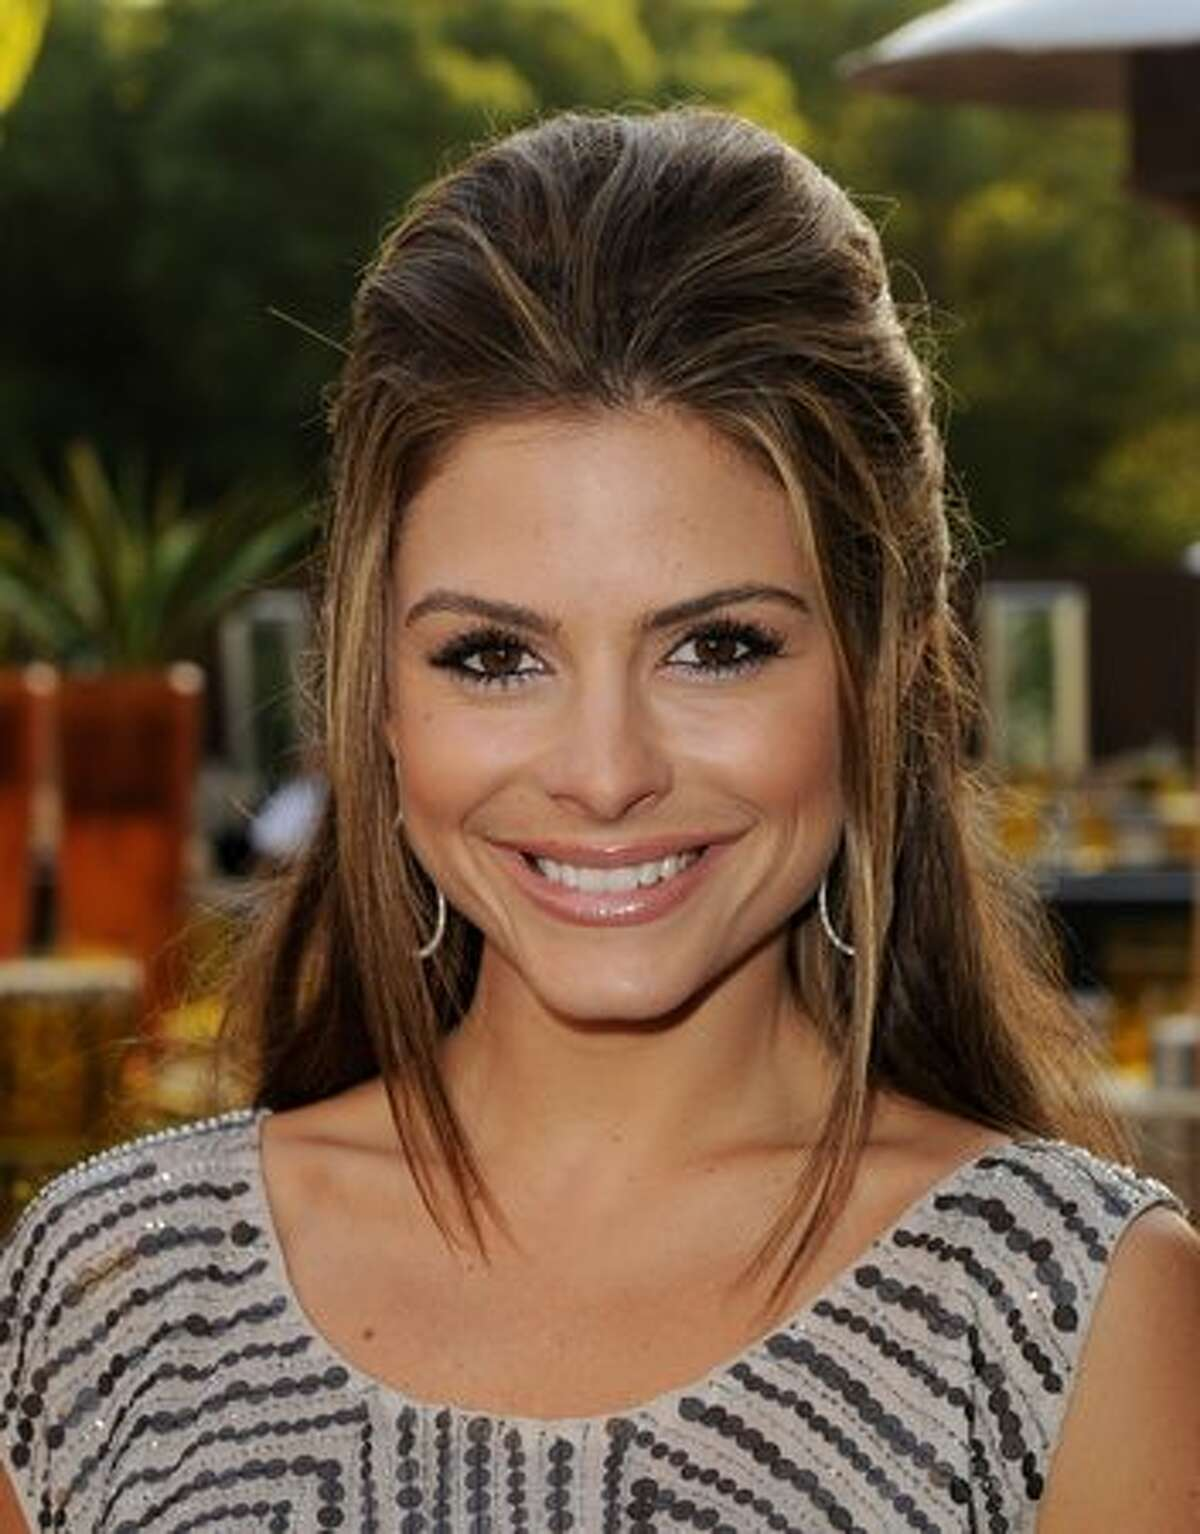 LOS ANGELES, CA - JUNE 16: Actress Maria Menounos arrives at the premiere of HBO's